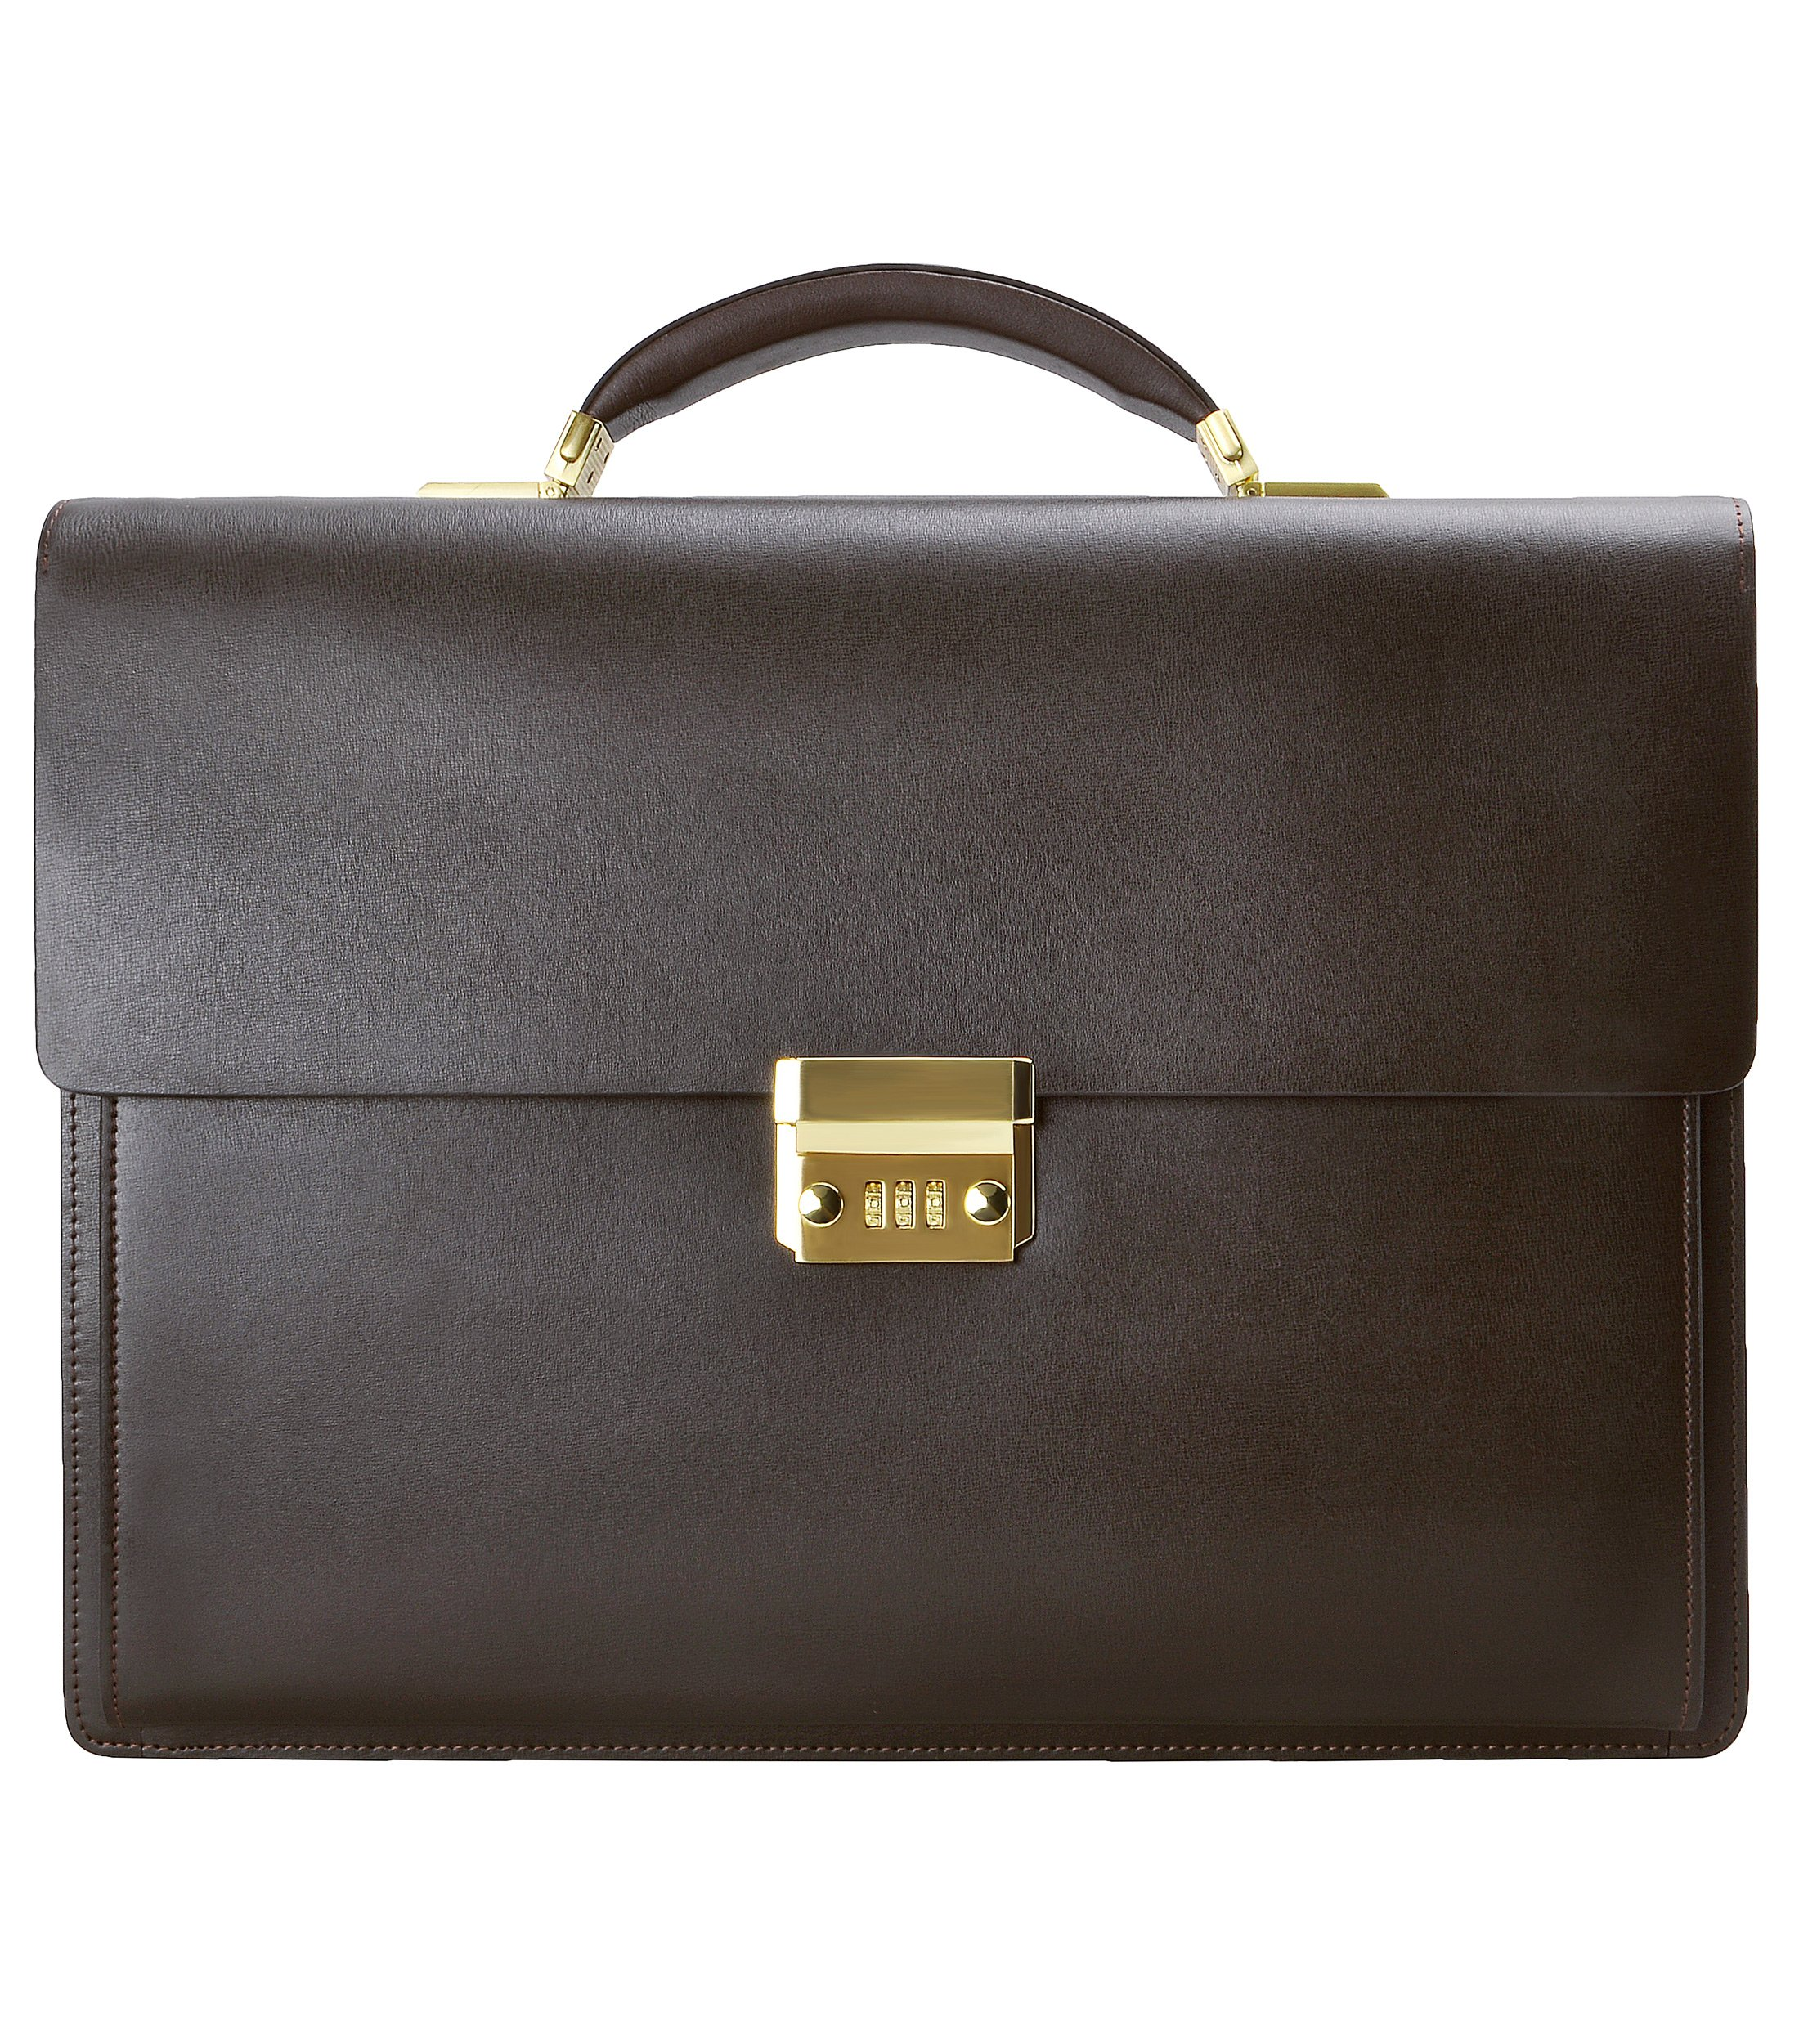 ZLYC Men Leather Flap Over Laptop Messenger Bag Formal Briefcase Combination Code Business Bag, Coffee